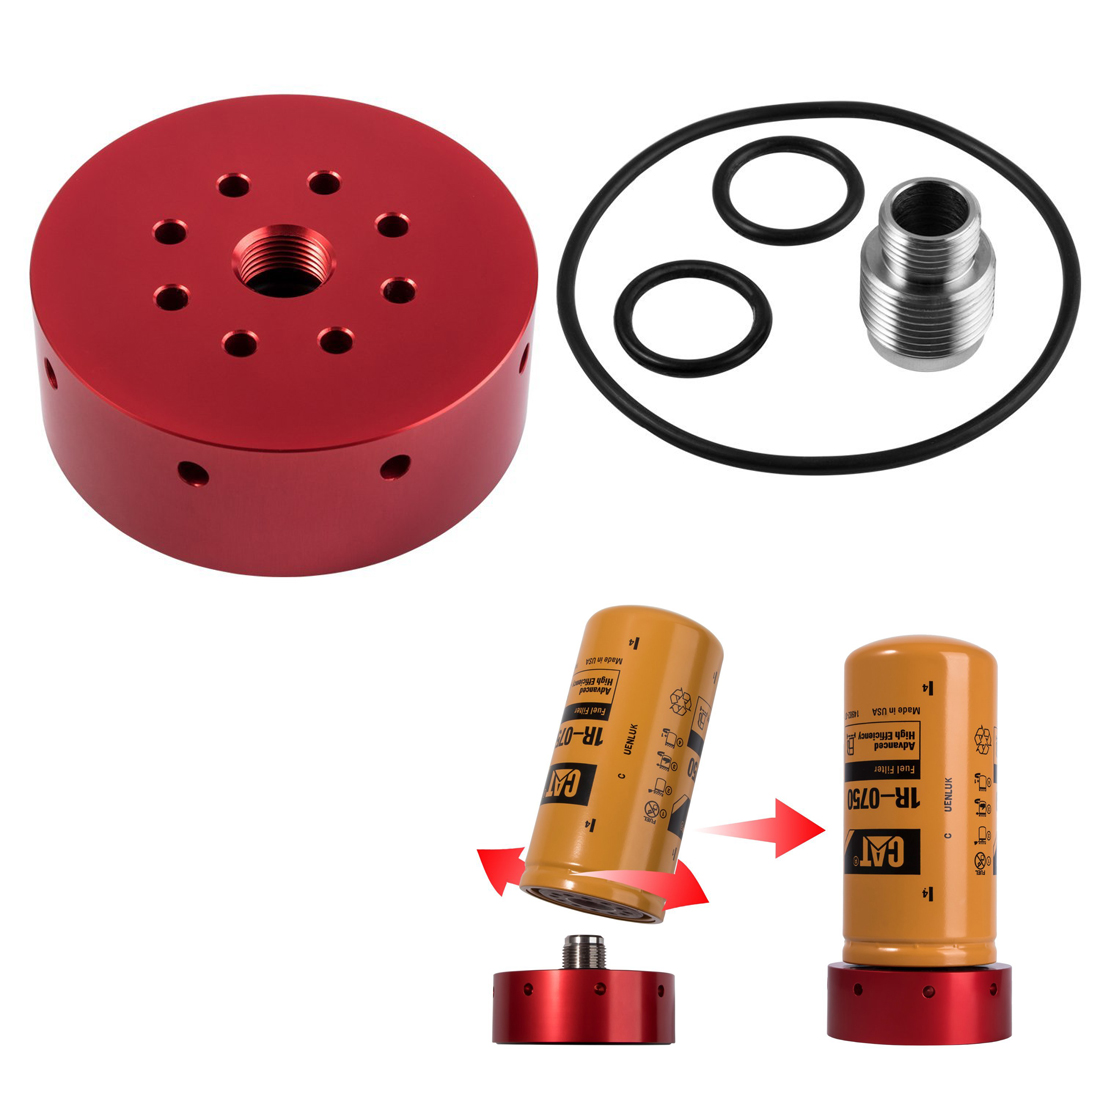 hight resolution of details about red fuel filter adapter kit for chevy gmc duramax diesel lb7 lly lbz lmm lml b